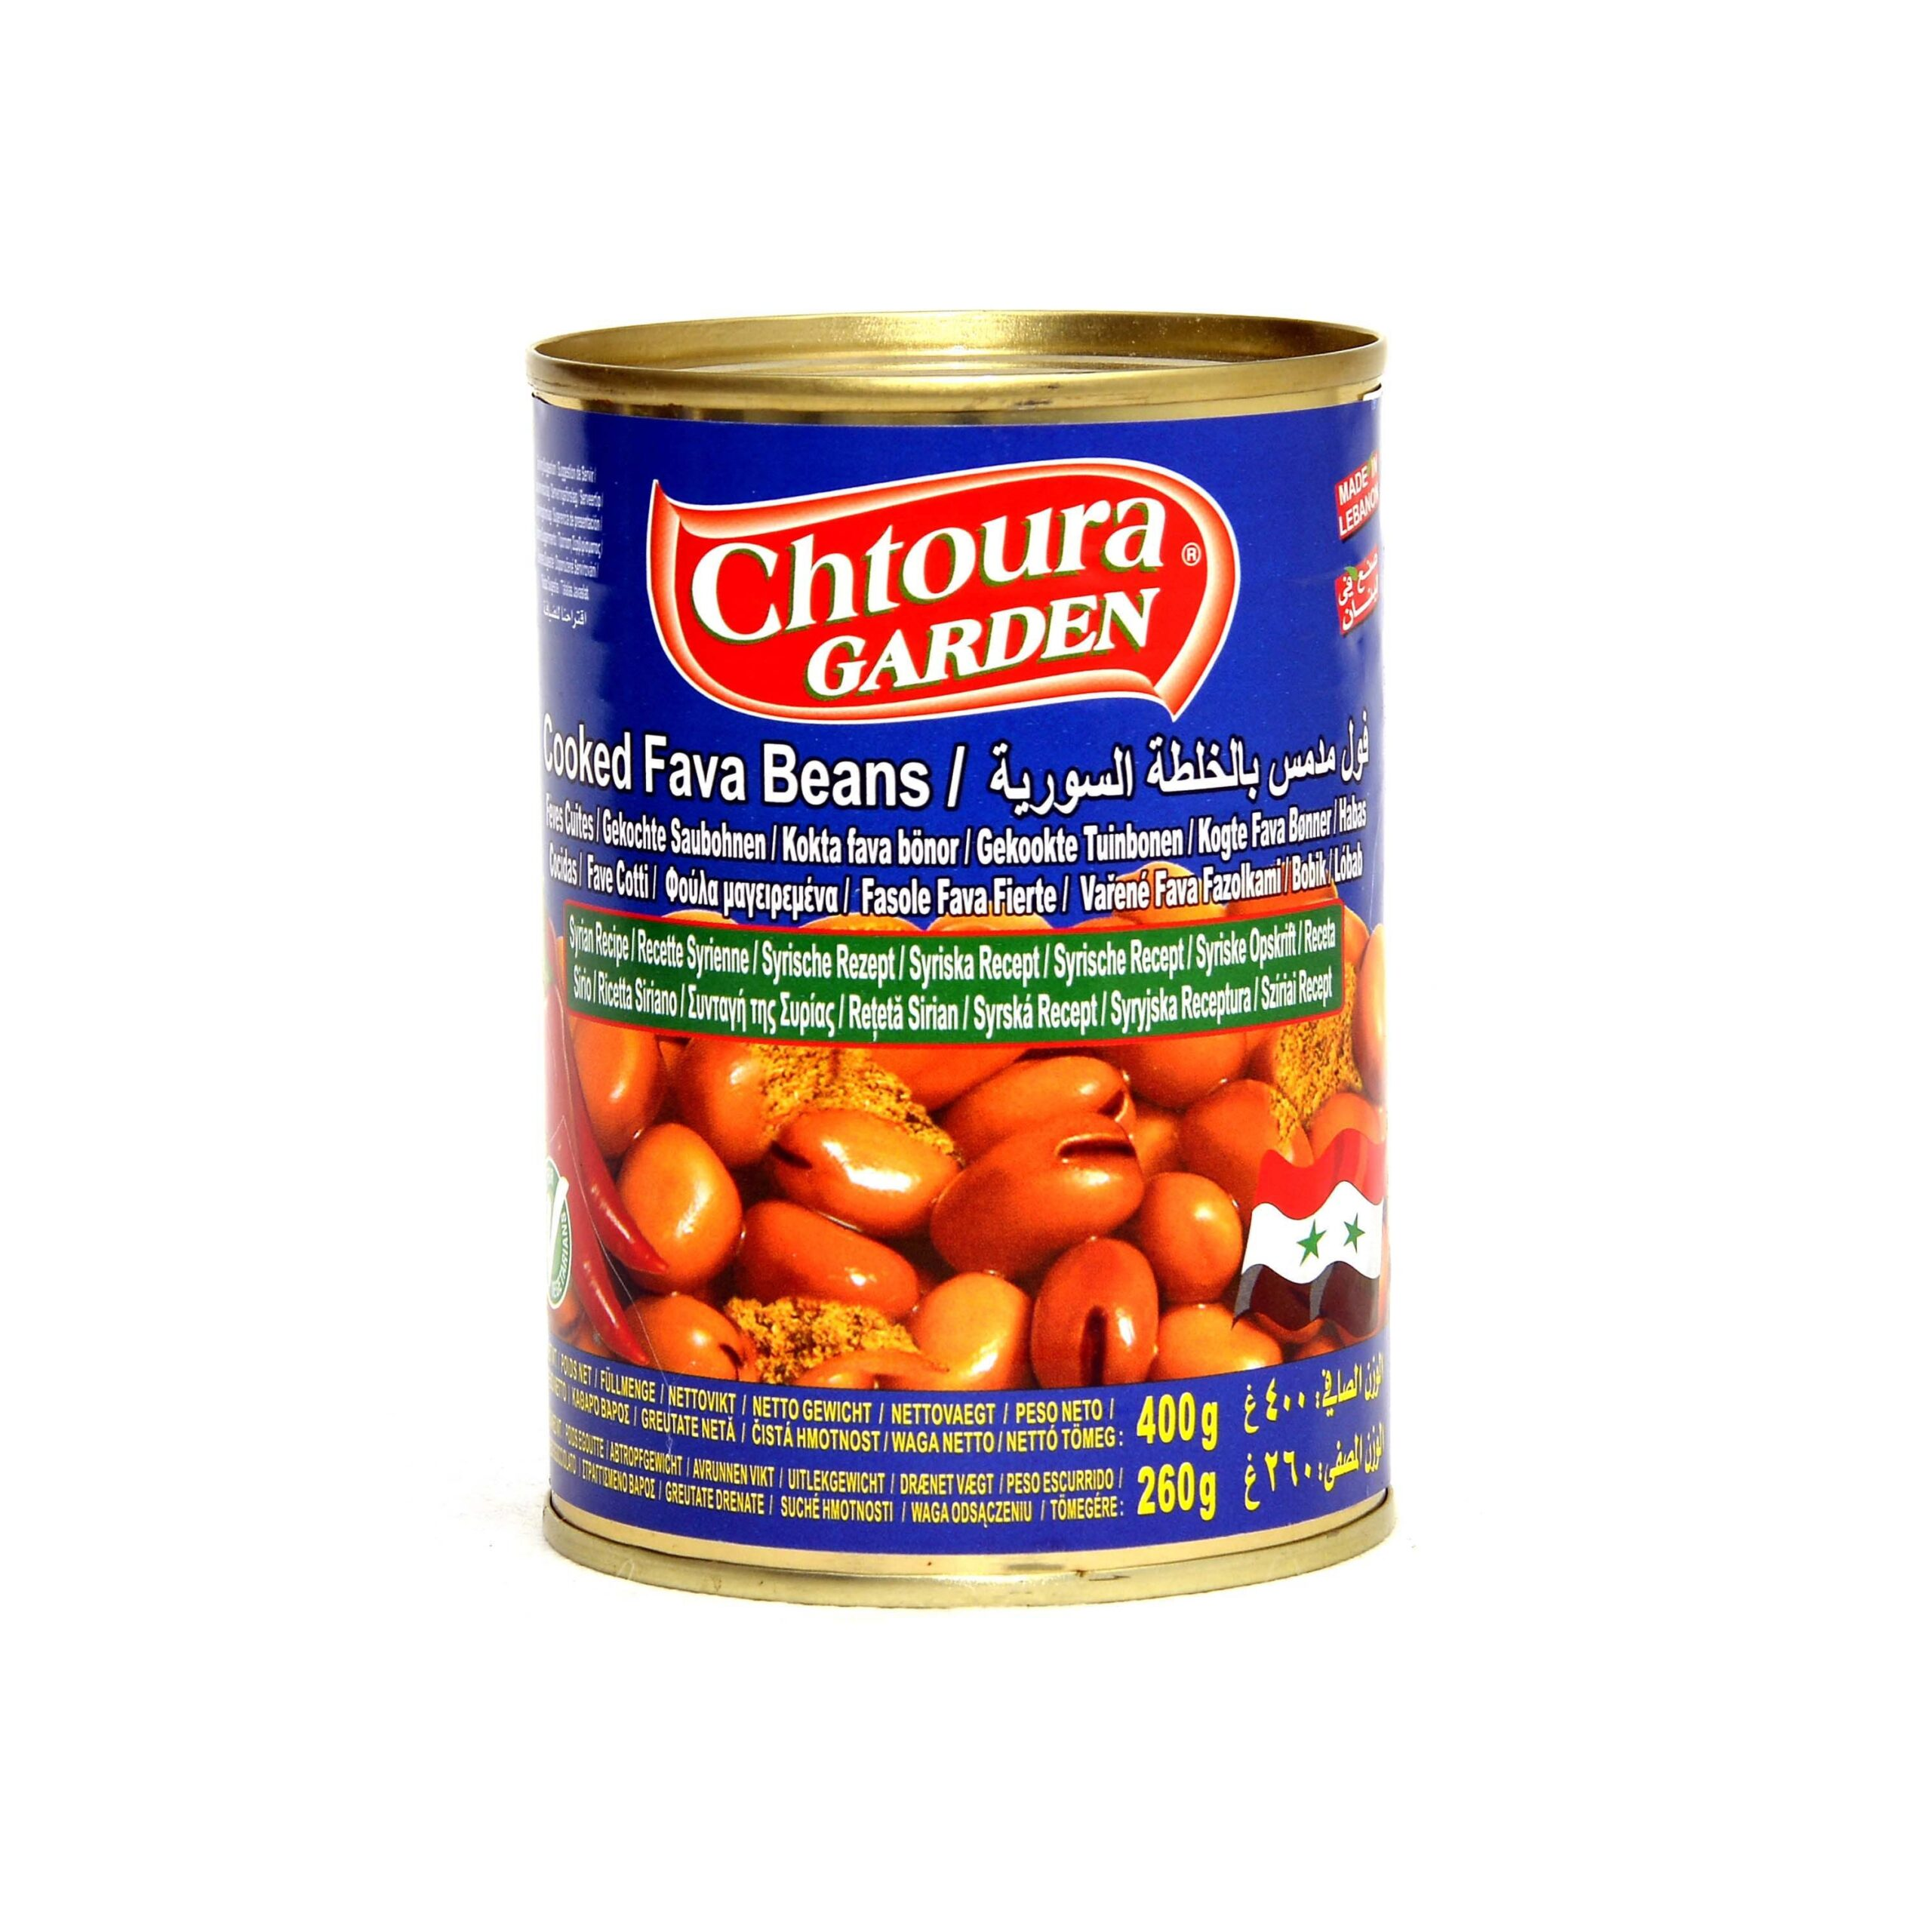 Chtoura Cooked Fava Beans Syrian Recipe